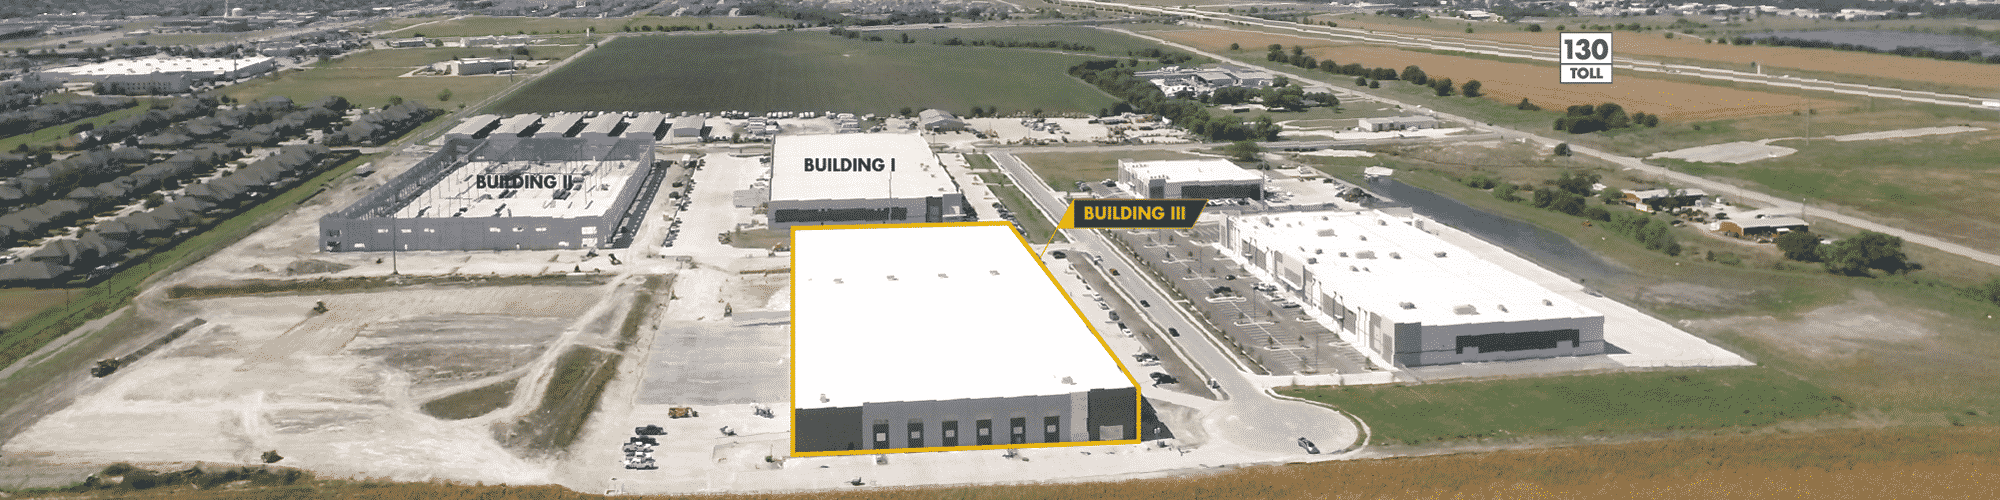 Innovation Business Park III in Hutto Texas